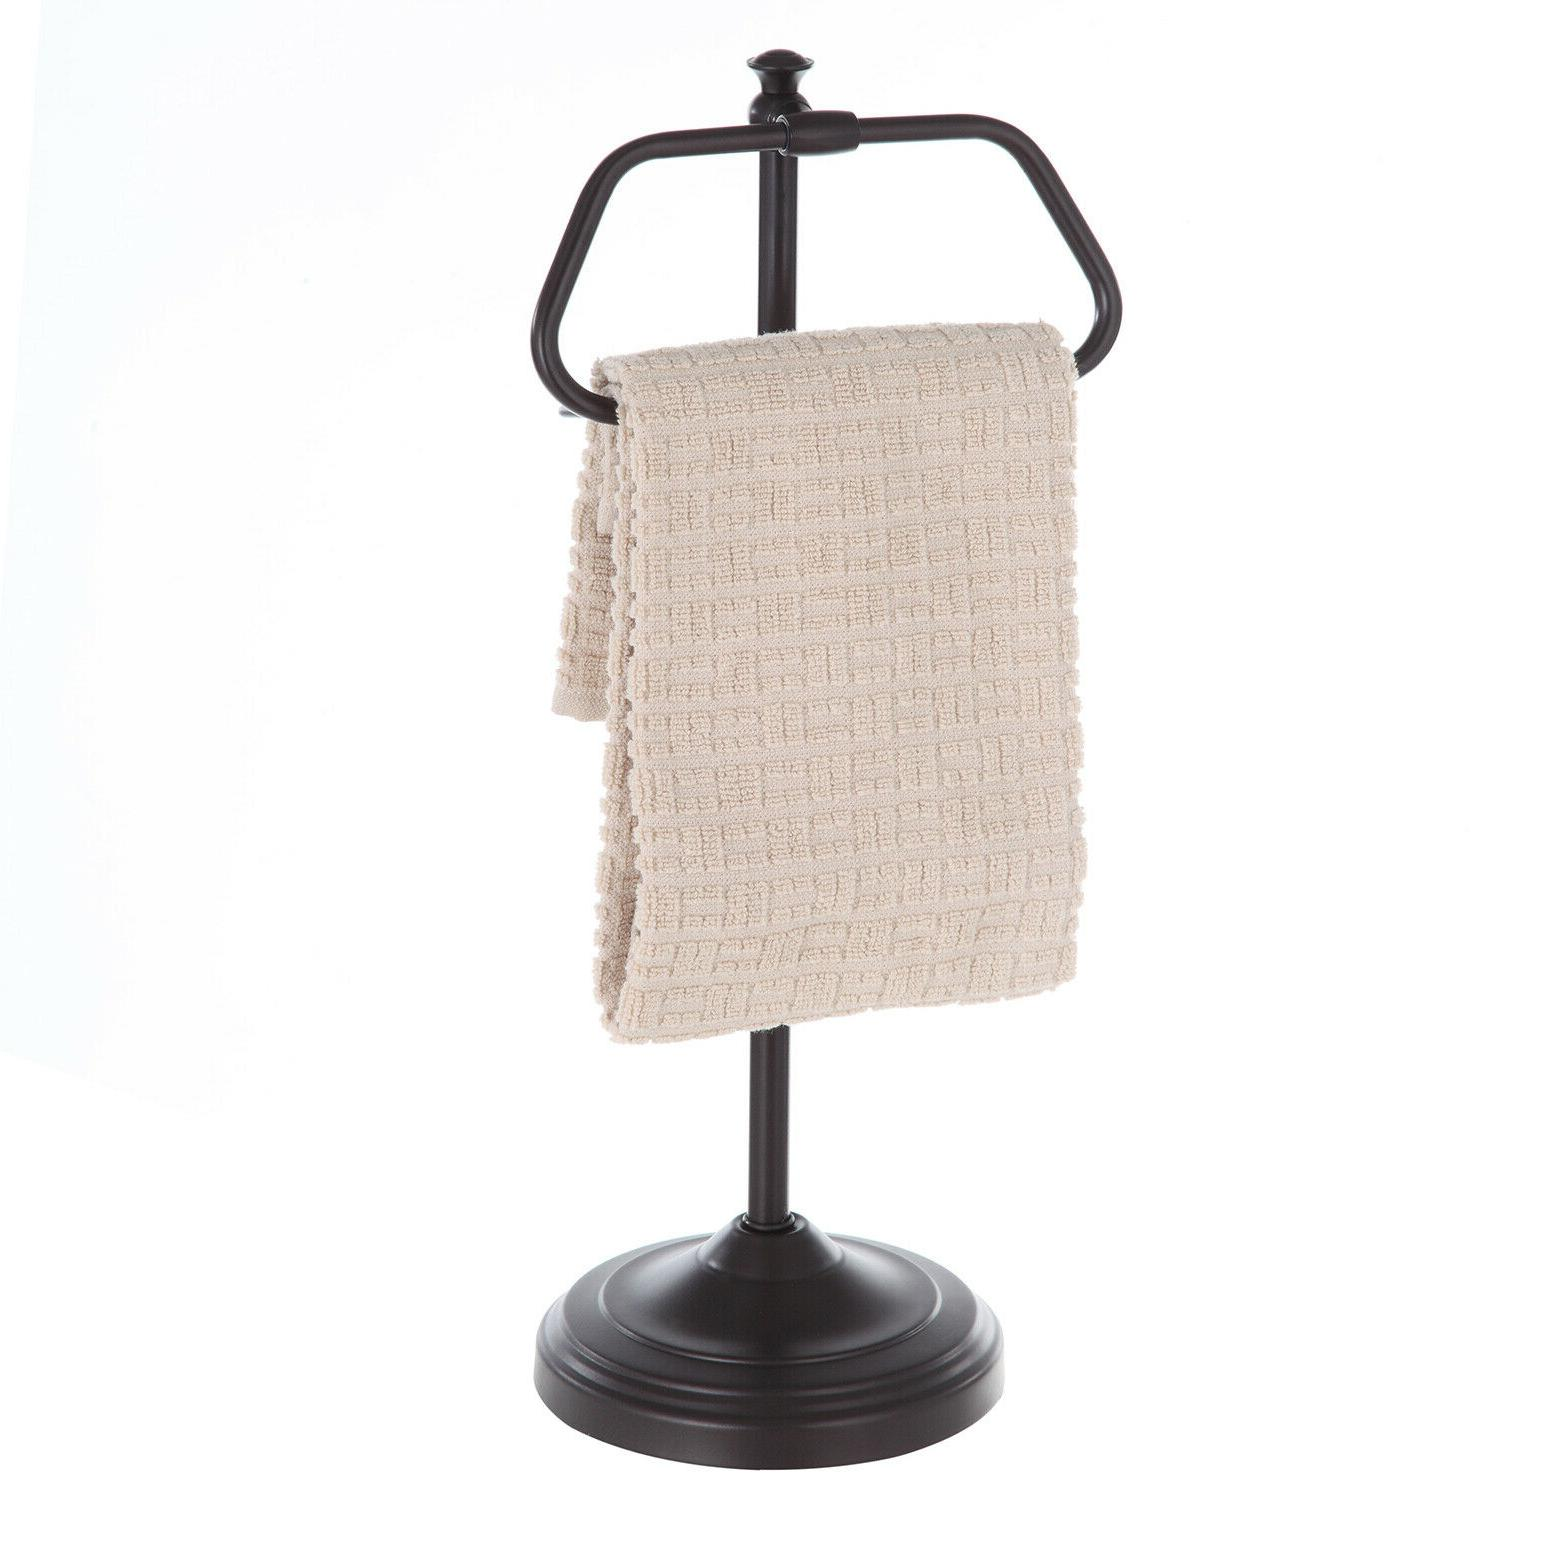 Hand Towel Ring Holder Oil Rubbed Bronze Bathroom Free Stand